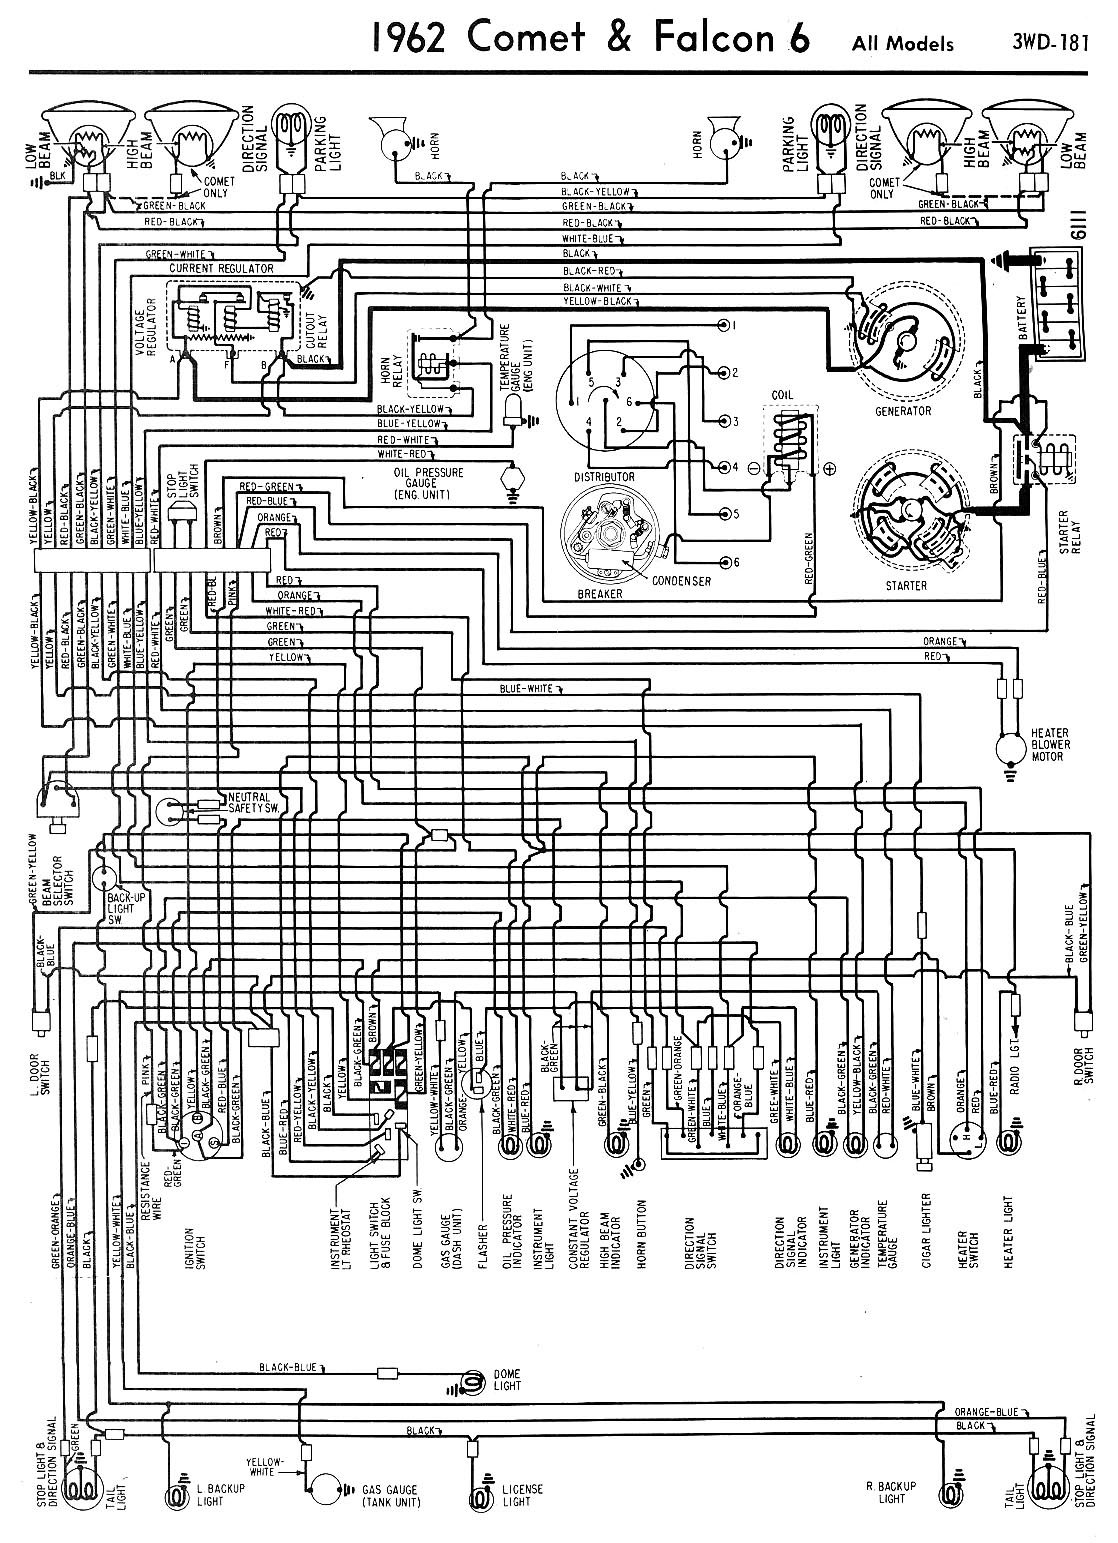 Au Falcon Wiring Diagram And Schematics Image Details Moreover 1963 Ford Home 62 Comet